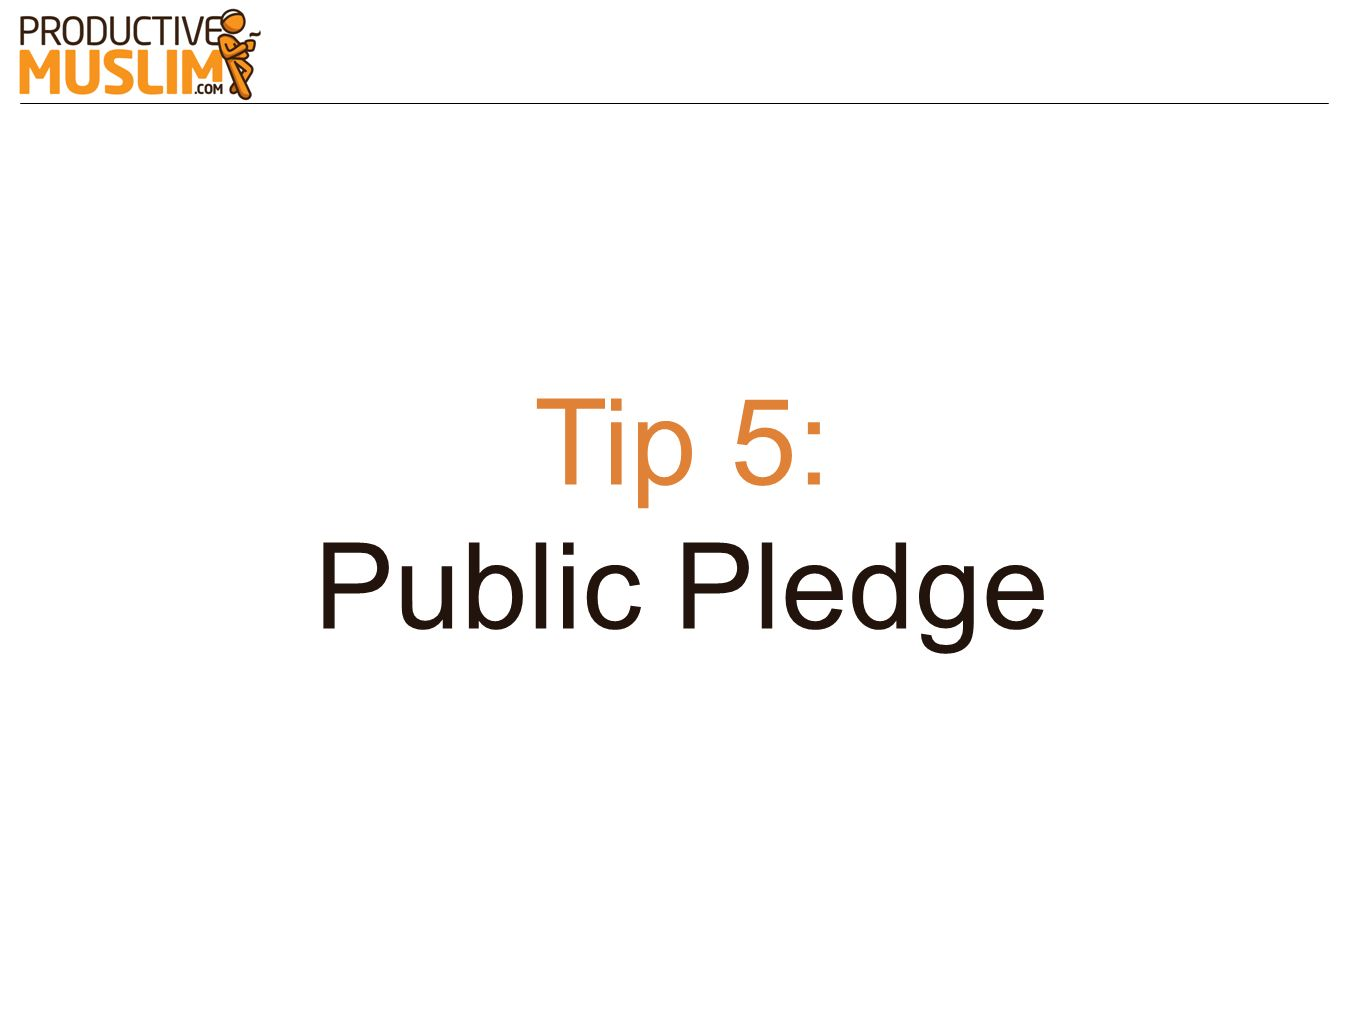 Tip 5: Public Pledge